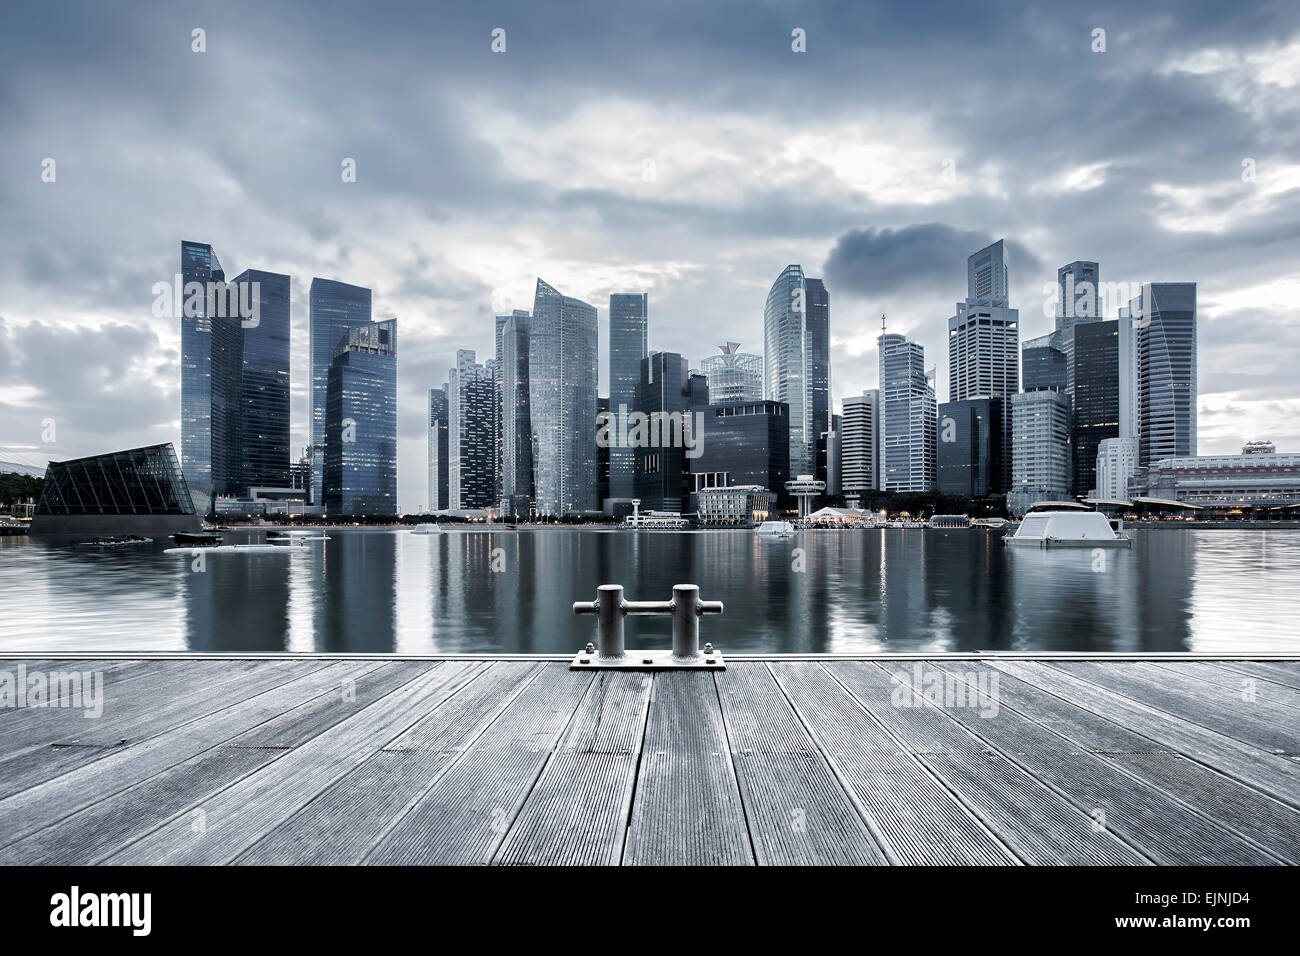 Singapore city skyline seen from the pier Stock Photo